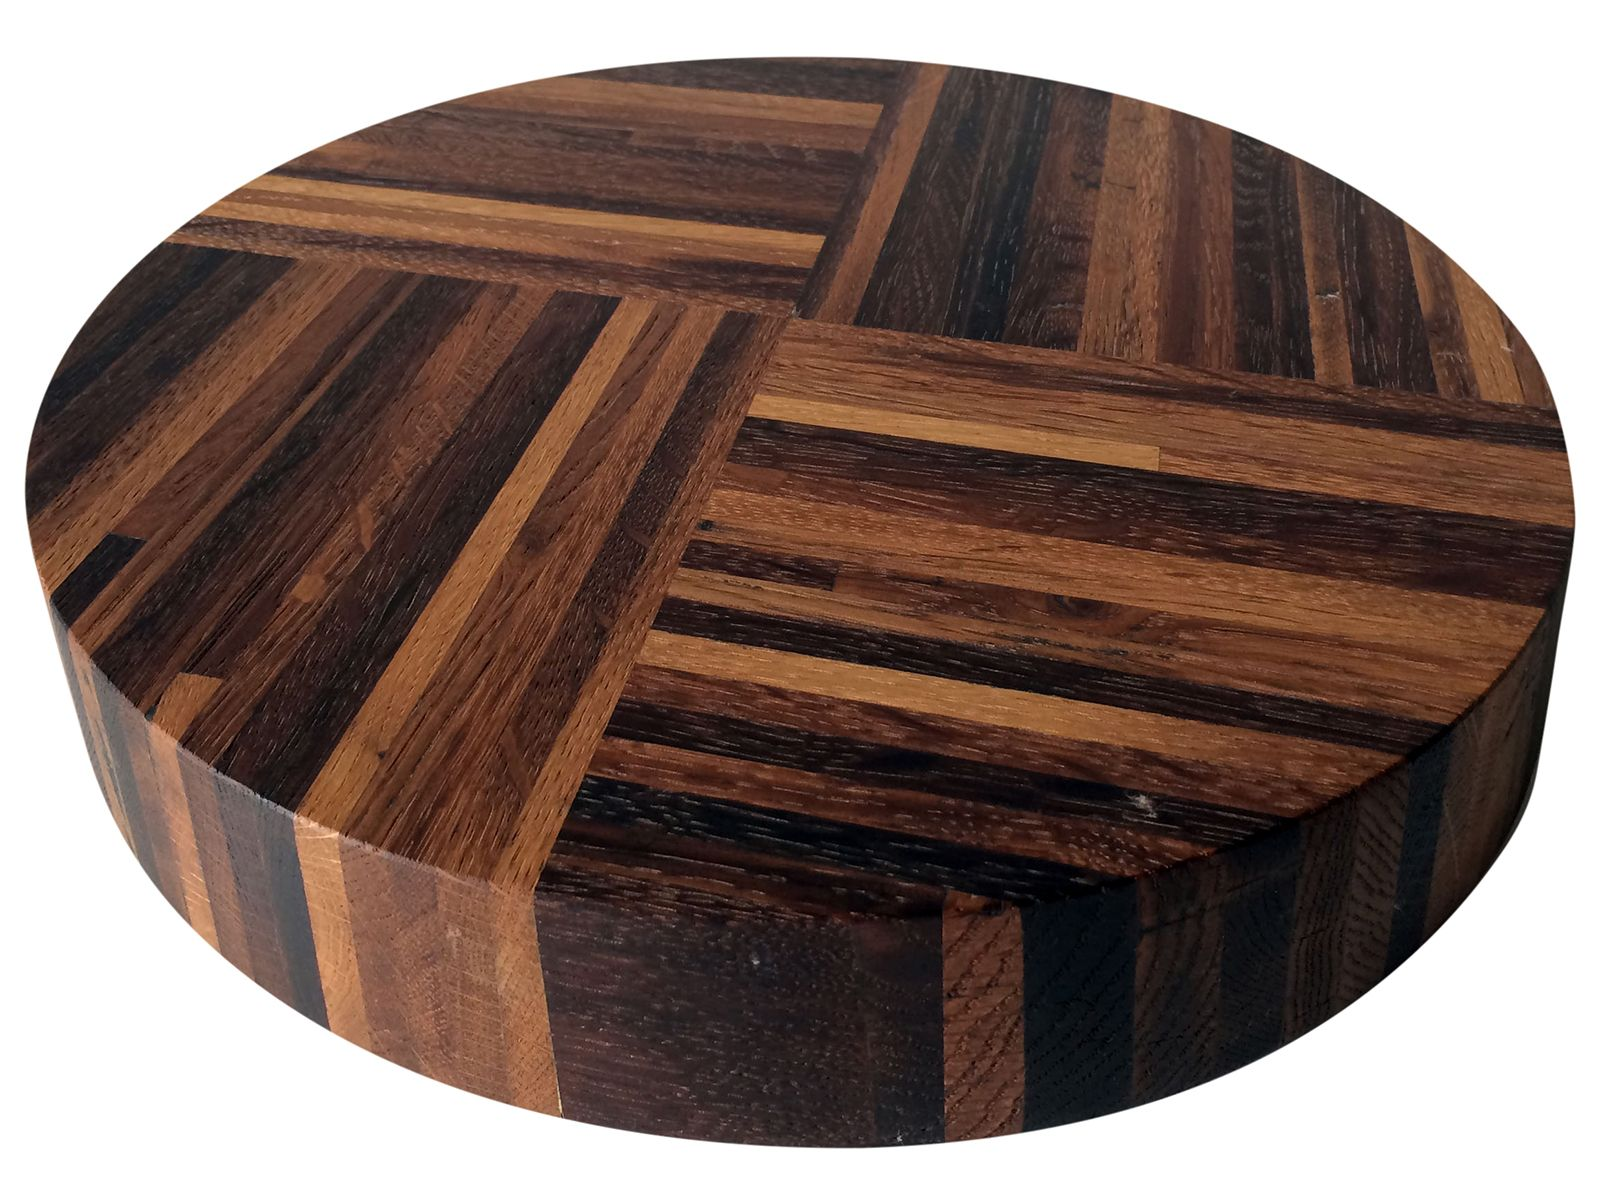 Add a bit of texture, style and convenience to your dining room table with this reclaimed wine oak turntable that's stained naturally by wine grapes. The quadripartite striping adds a fun visual effect to your table as your Lazy Susan spins.